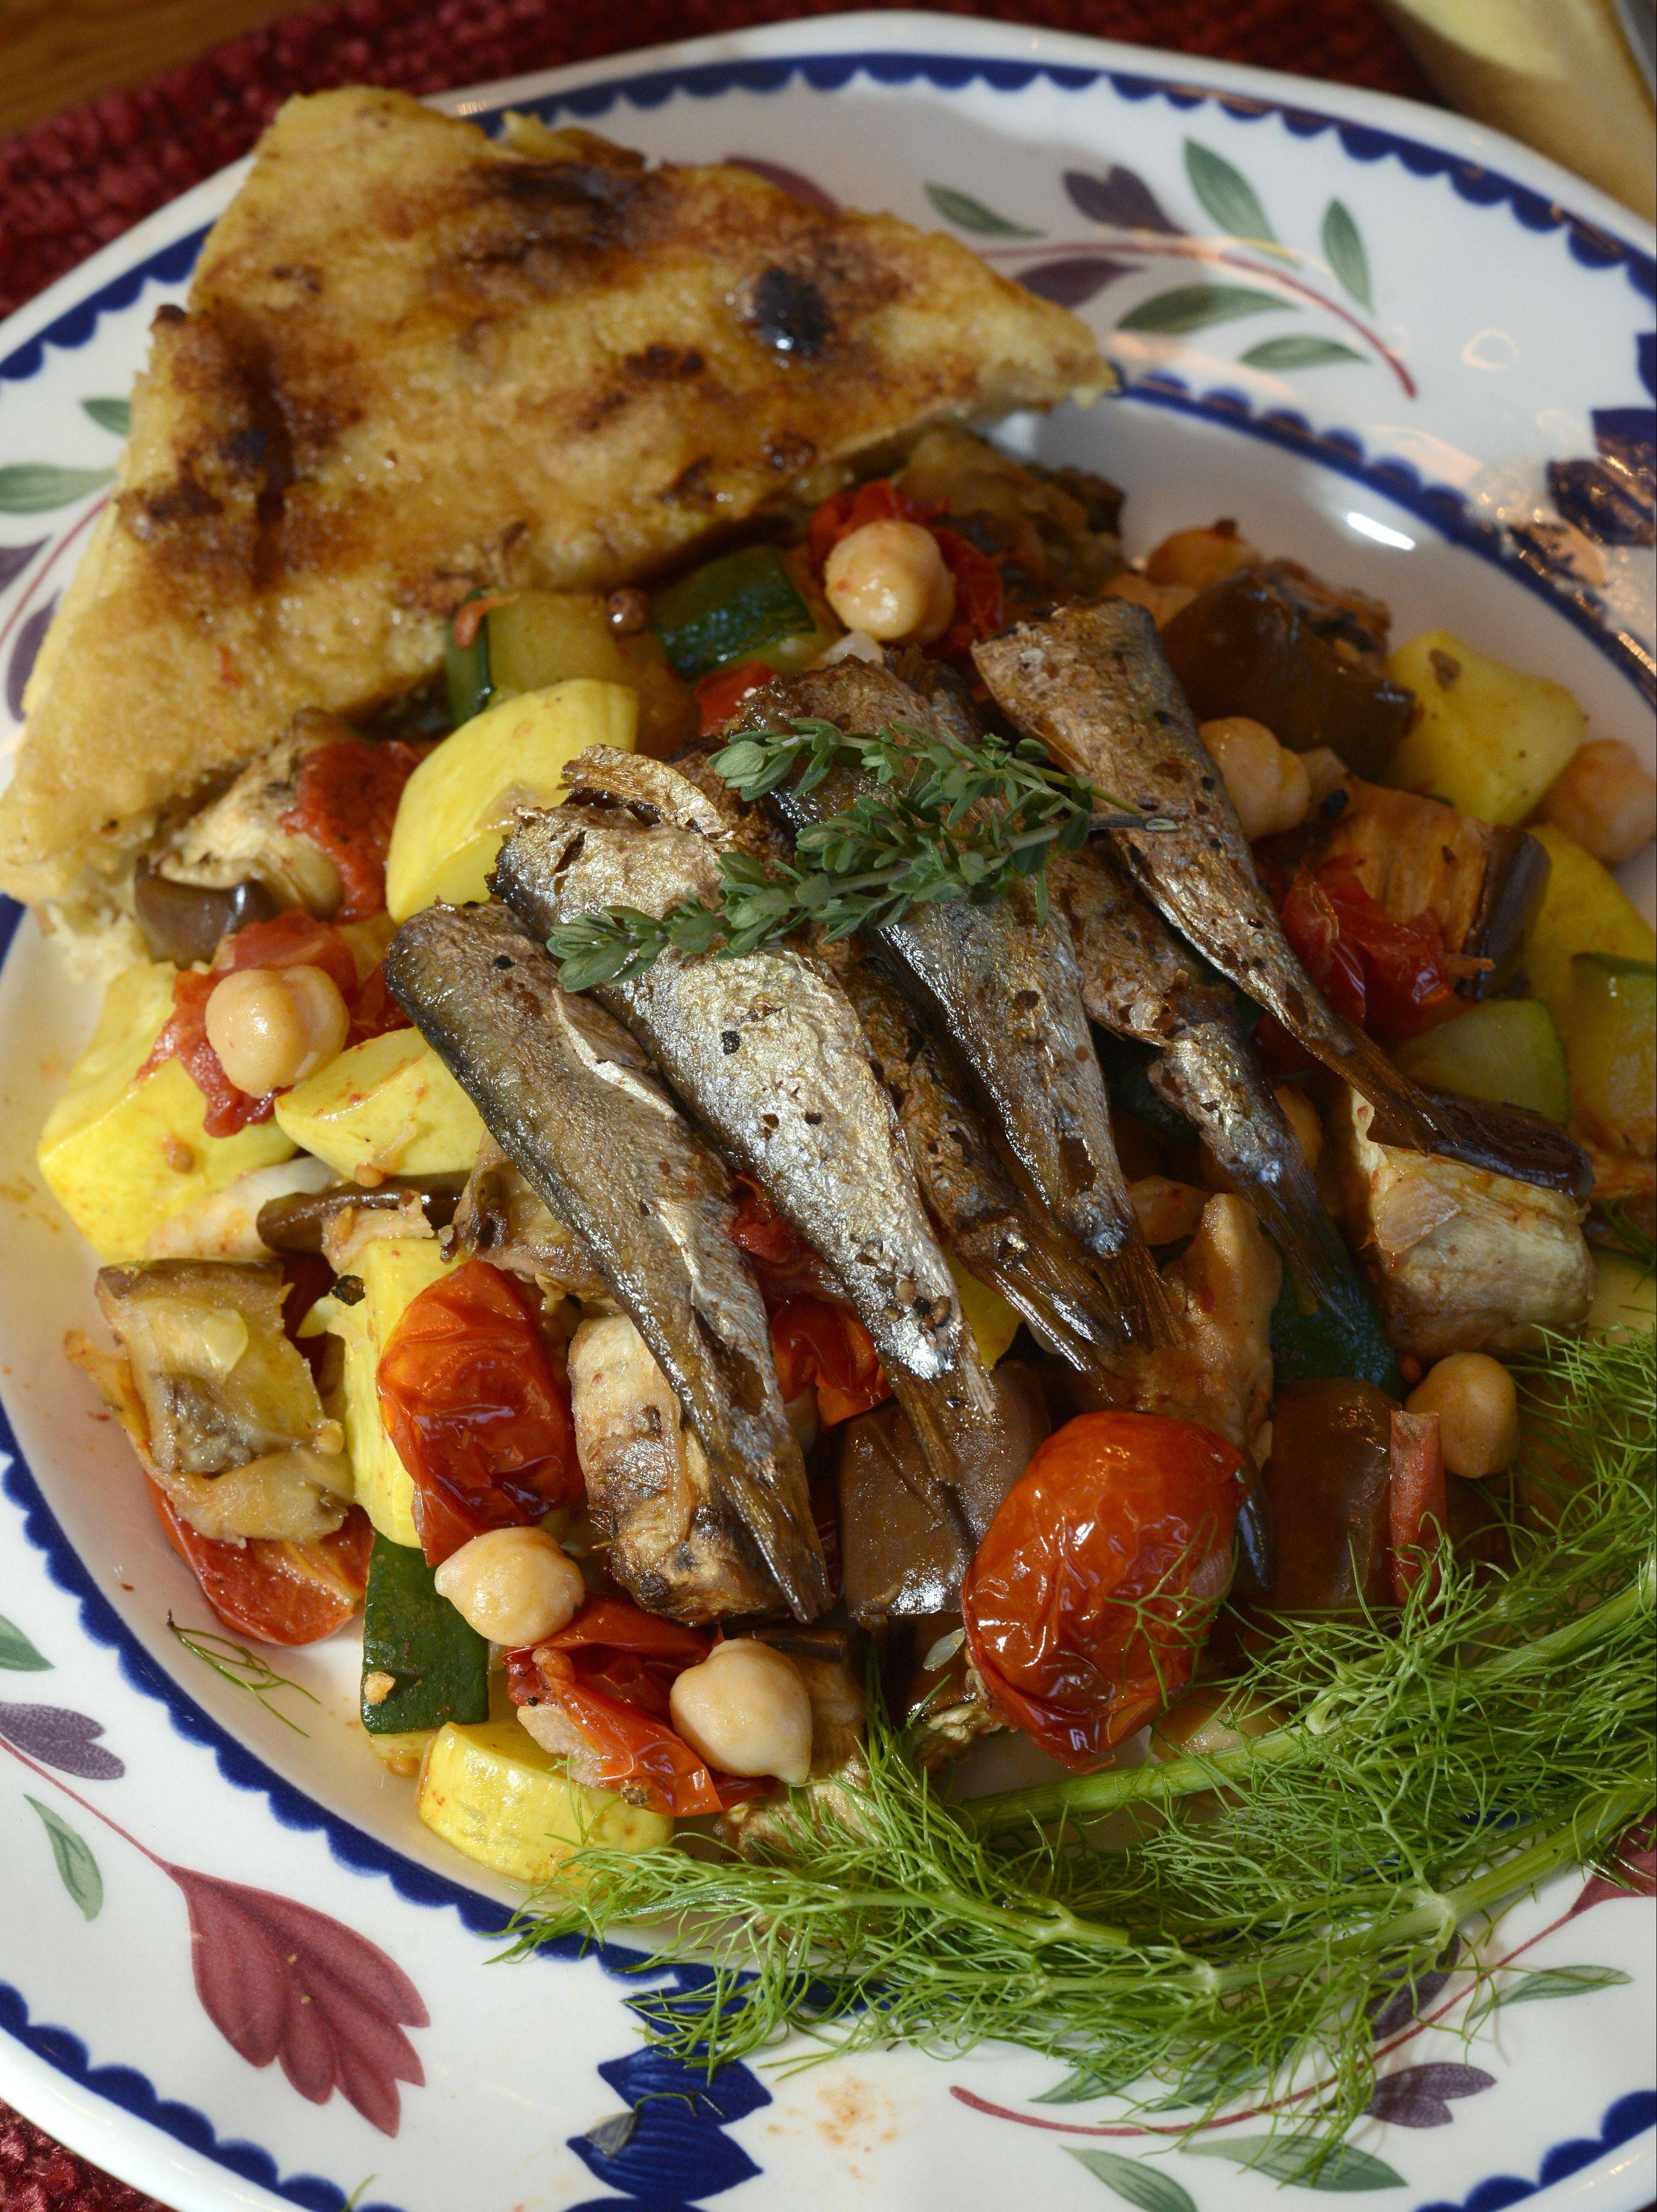 Mike Baron of South Elgin worked with sardines, chick peas, fennel and golden raisins to creat a ratatouille, fried sardines, grilled polenta with walnuts, cheese and golden raisins.